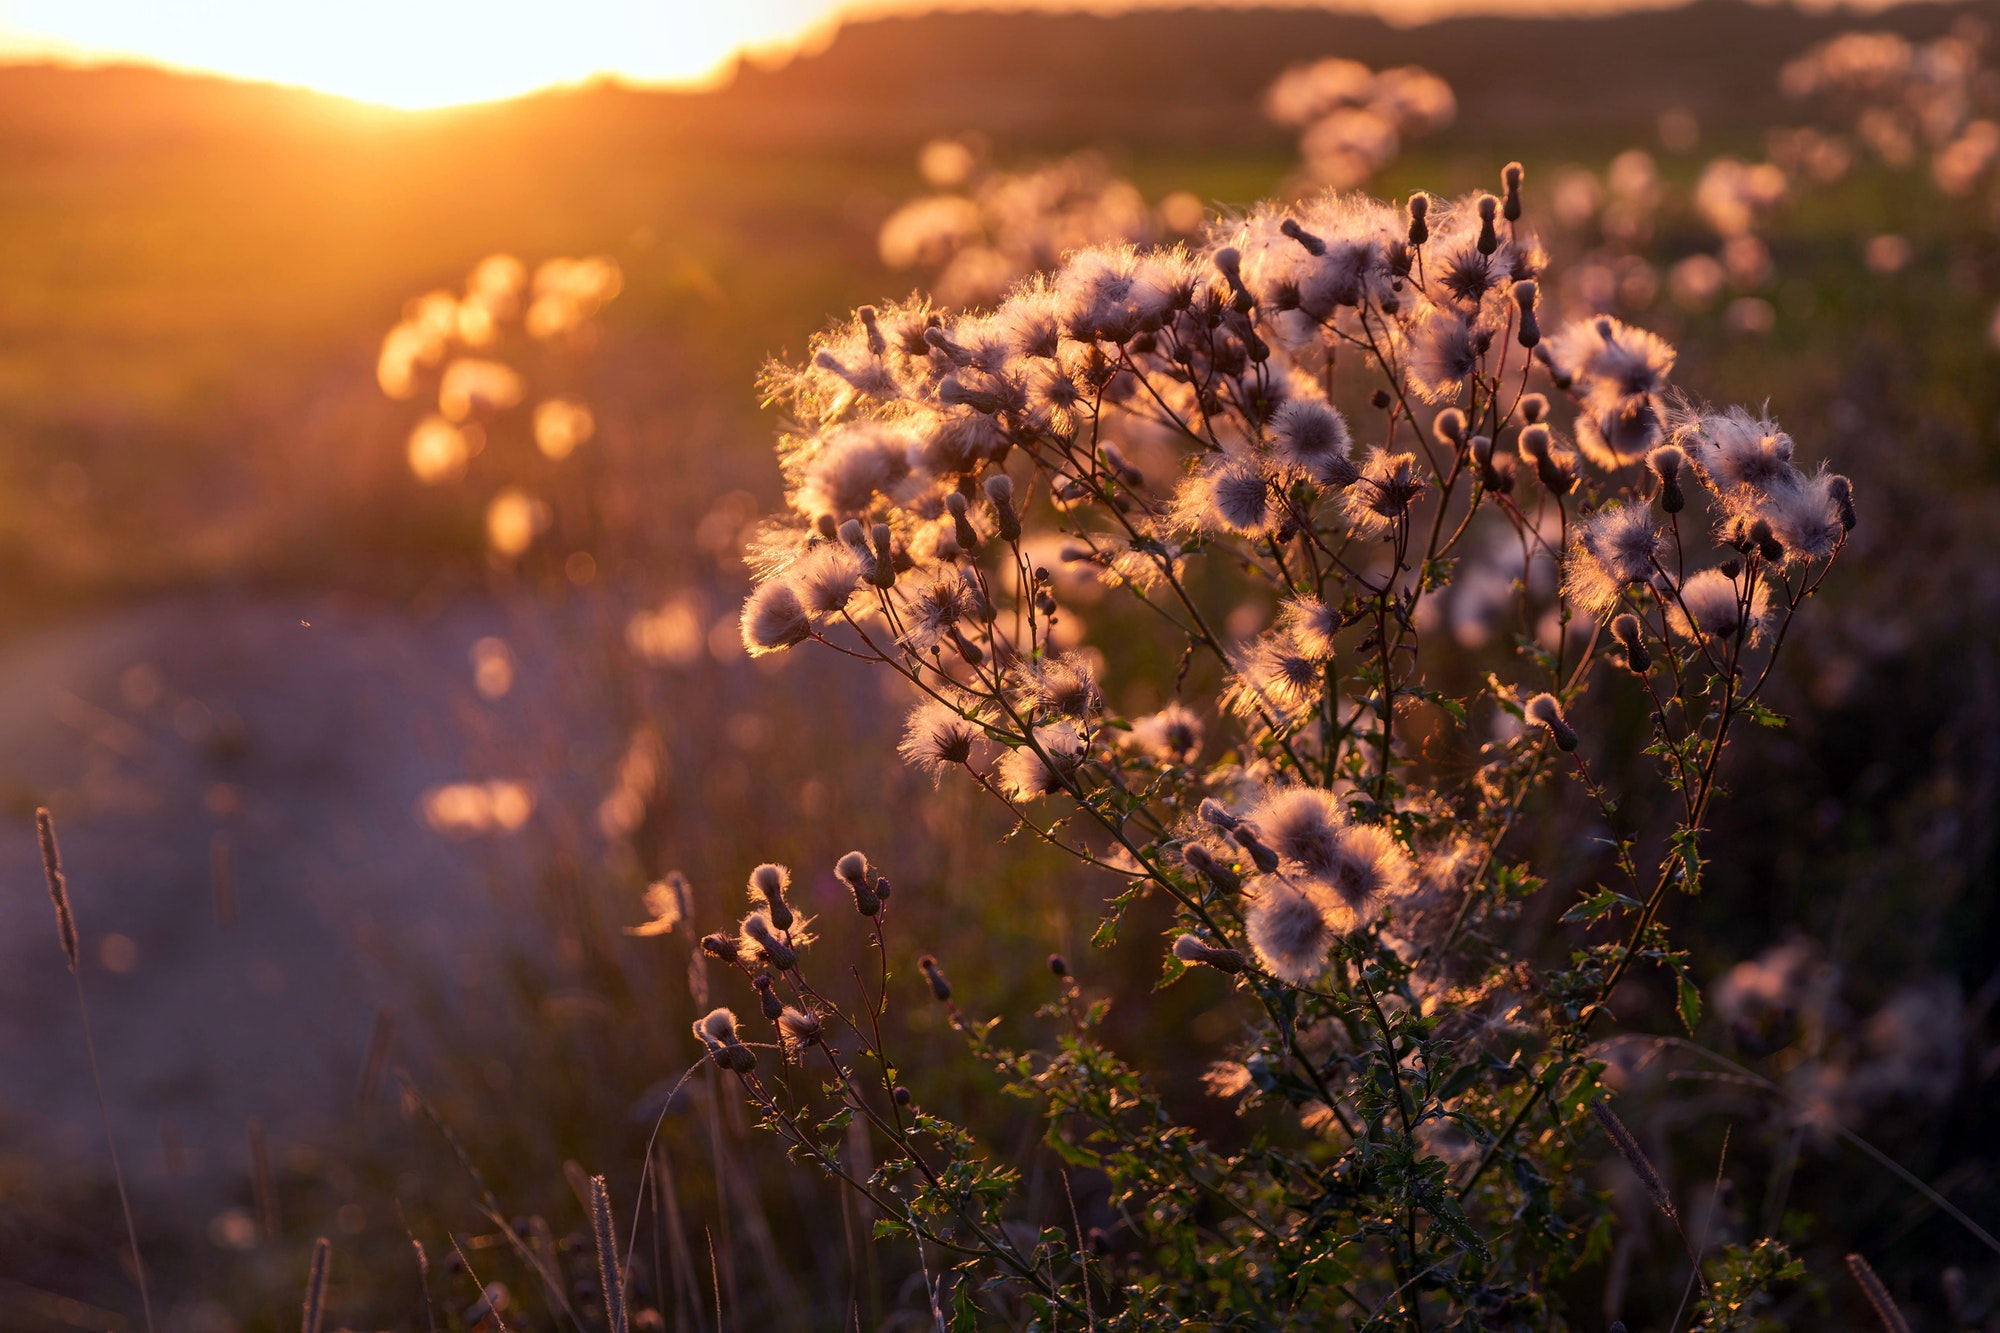 Sunset over the summer meadow